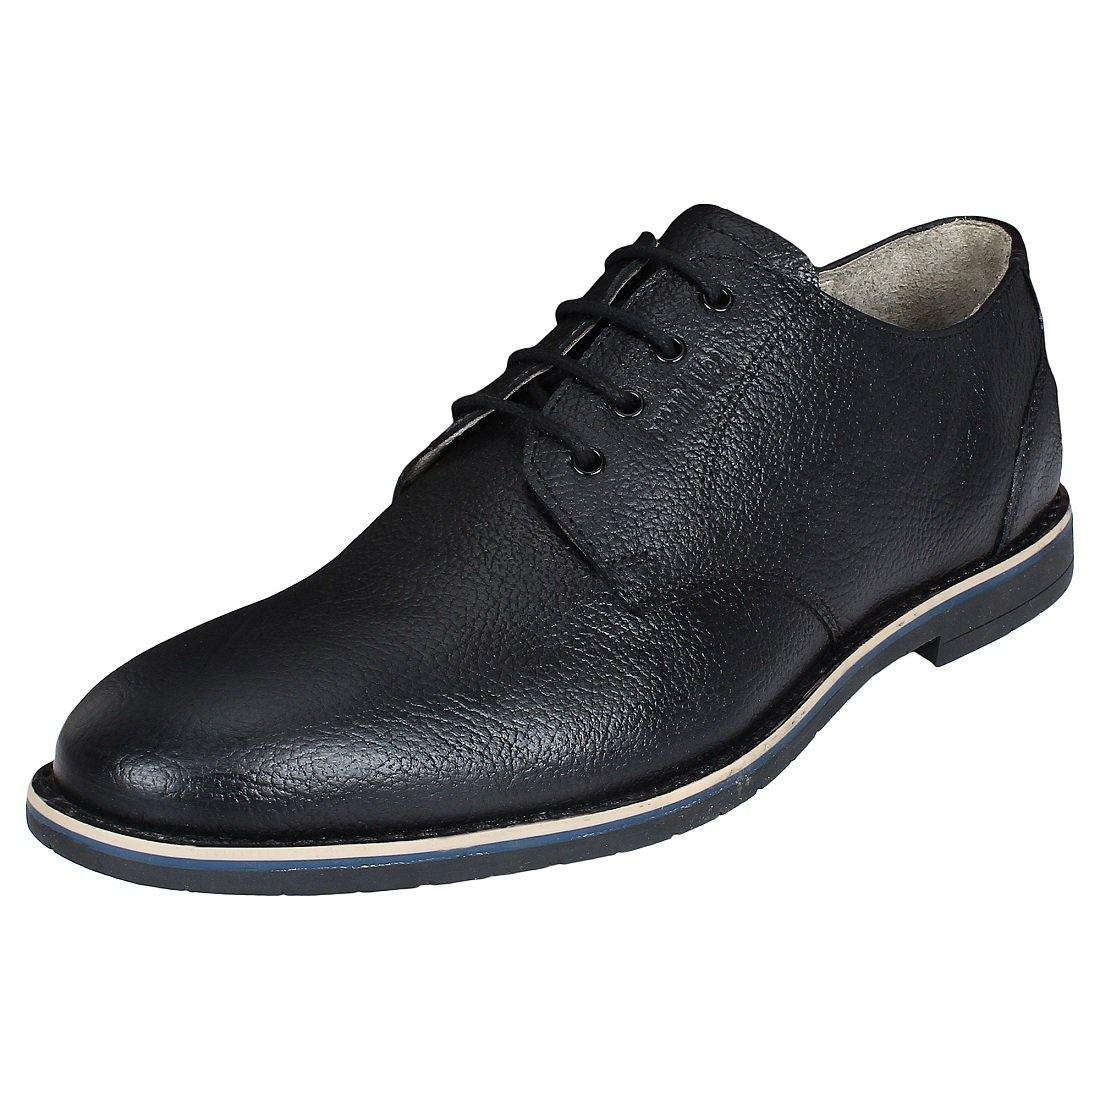 e29d4a94ae Leather Shoes - Buy leather for Men Online in India @ SeeandWear.com